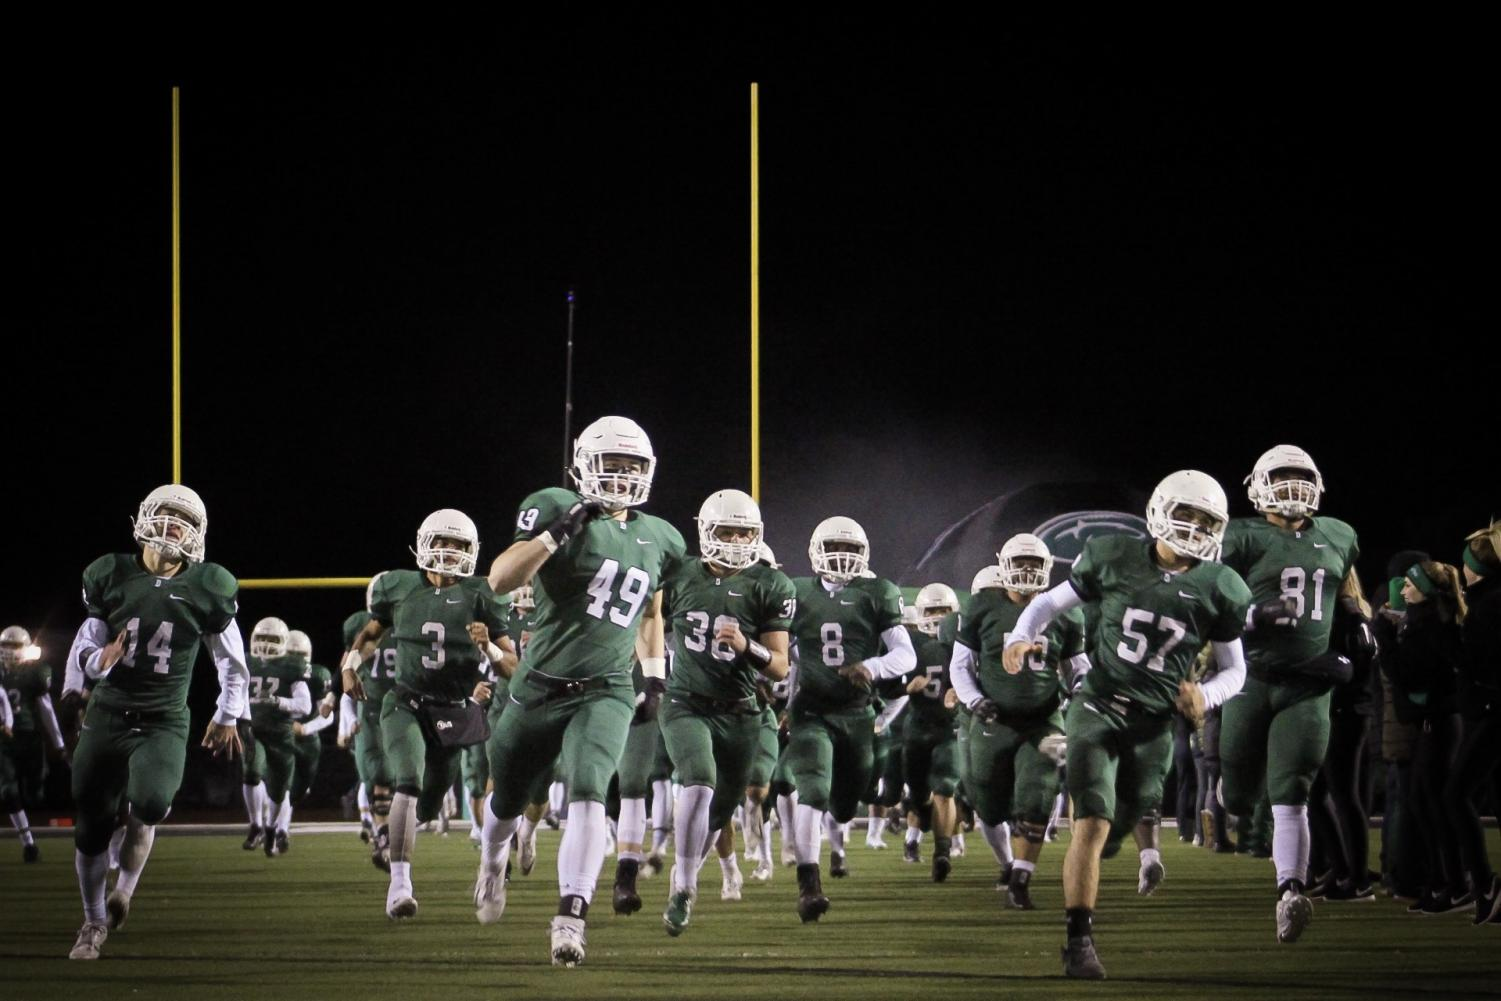 Derby vs. Topeka Football photo gallery (Photos by Grace Reich)